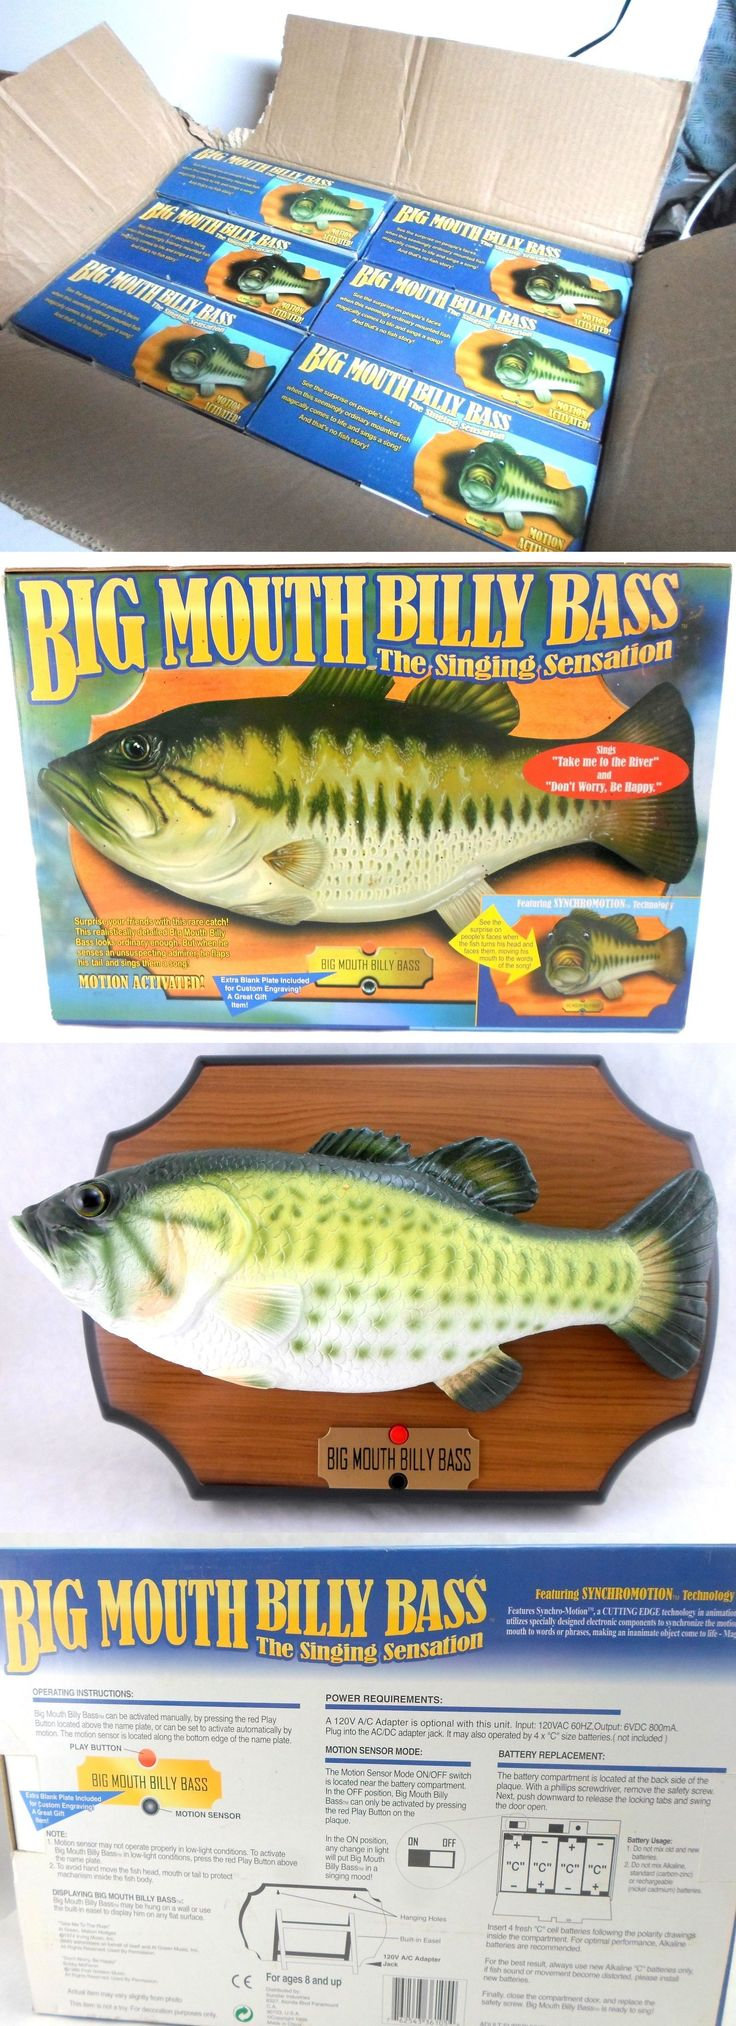 Novelties and Gifts 62143: Wholesale Case Lot Of 6 Big Mouth Billy Bass Singing Fish Mount Wall Plaques BUY IT NOW ONLY: $89.95